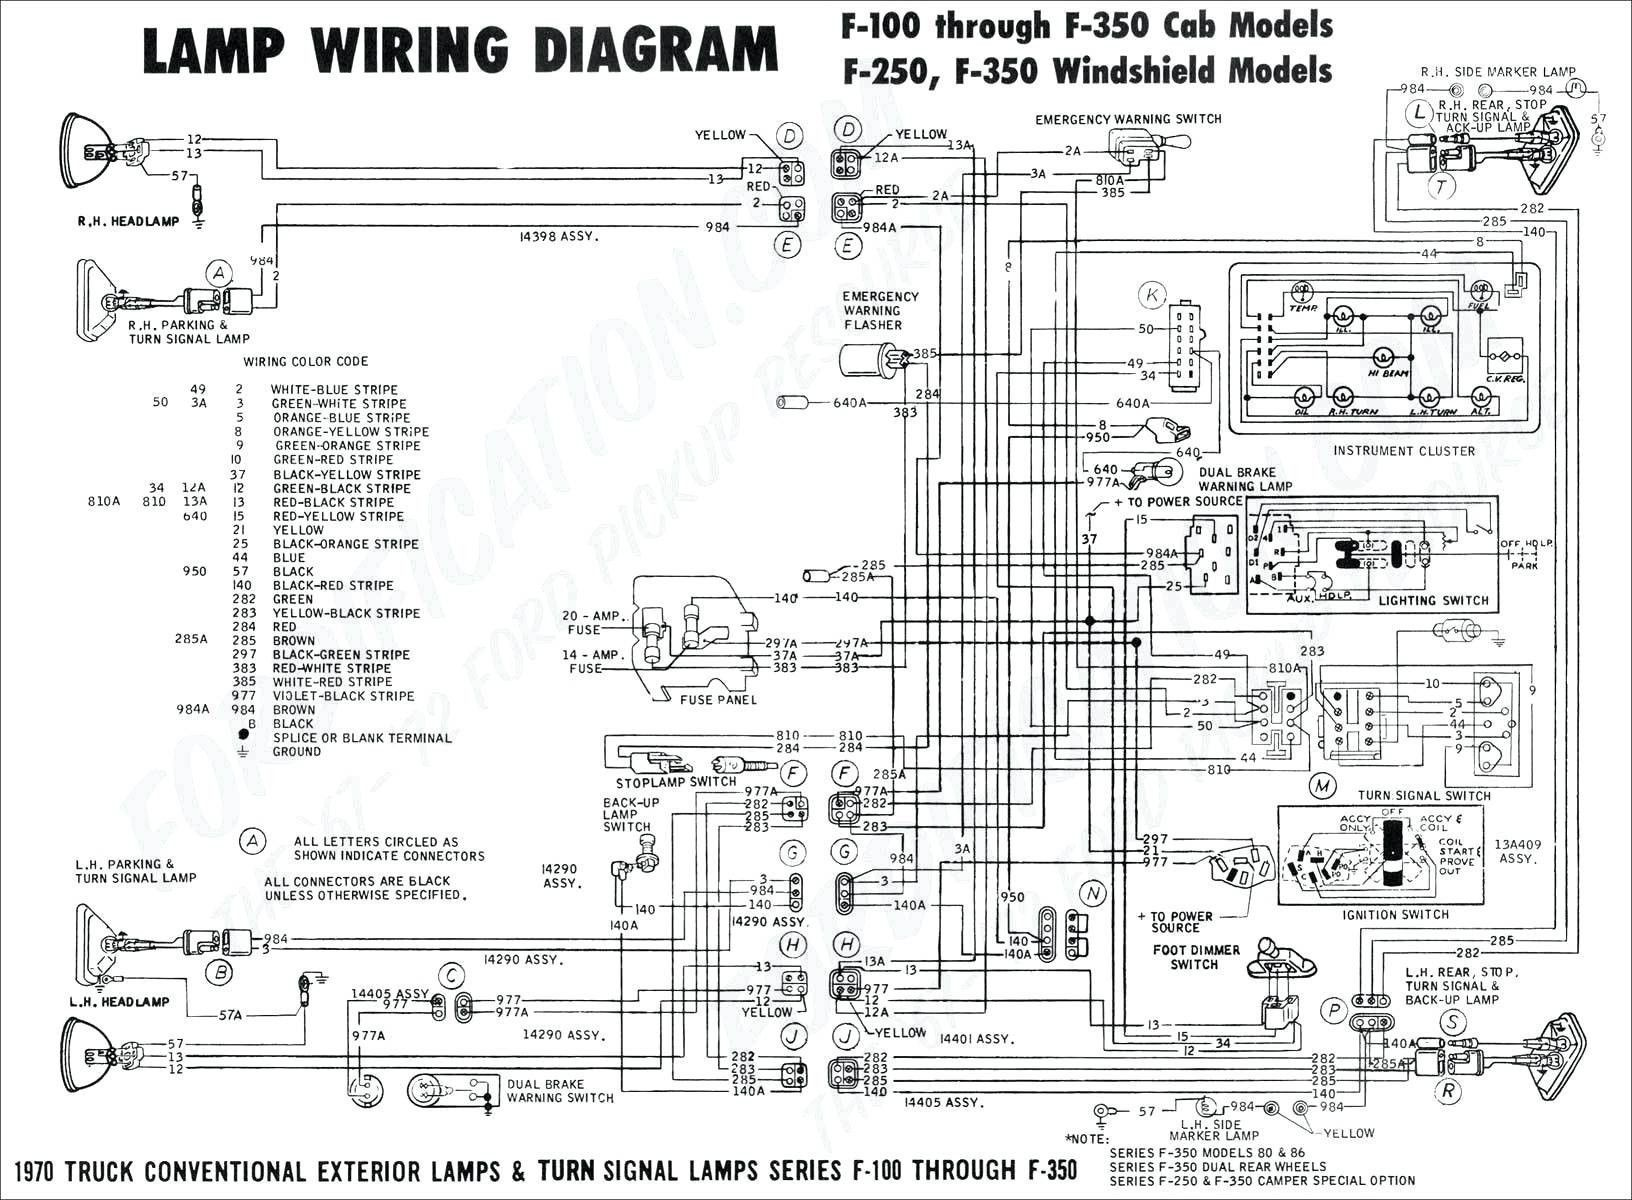 Wiring Diagram Of Motorcycle Honda Xrm 110 - bookingritzcarlton.info |  Trailer wiring diagram, Electrical diagram, Electrical wiring diagram | Ford F650 Air Conditioning Wiring |  | Pinterest